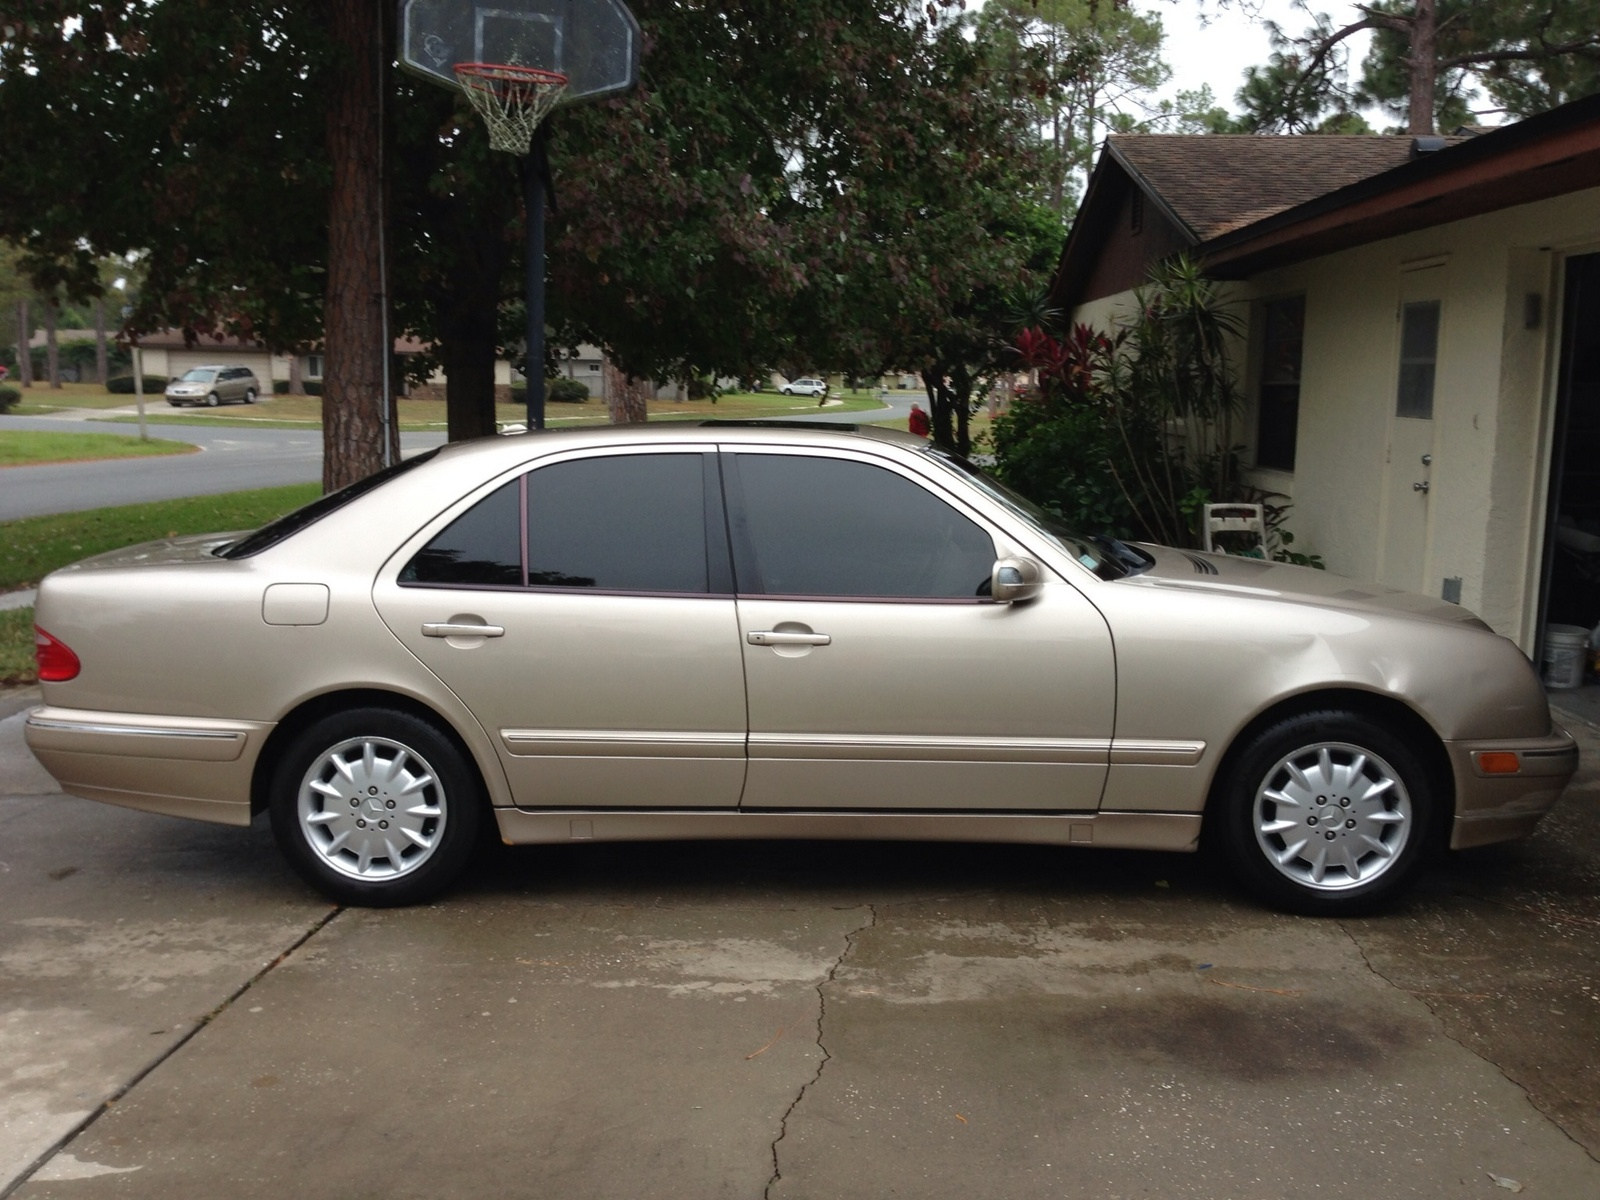 2000 mercedes benz e class exterior pictures cargurus for 2000 mercedes benz e320 wagon